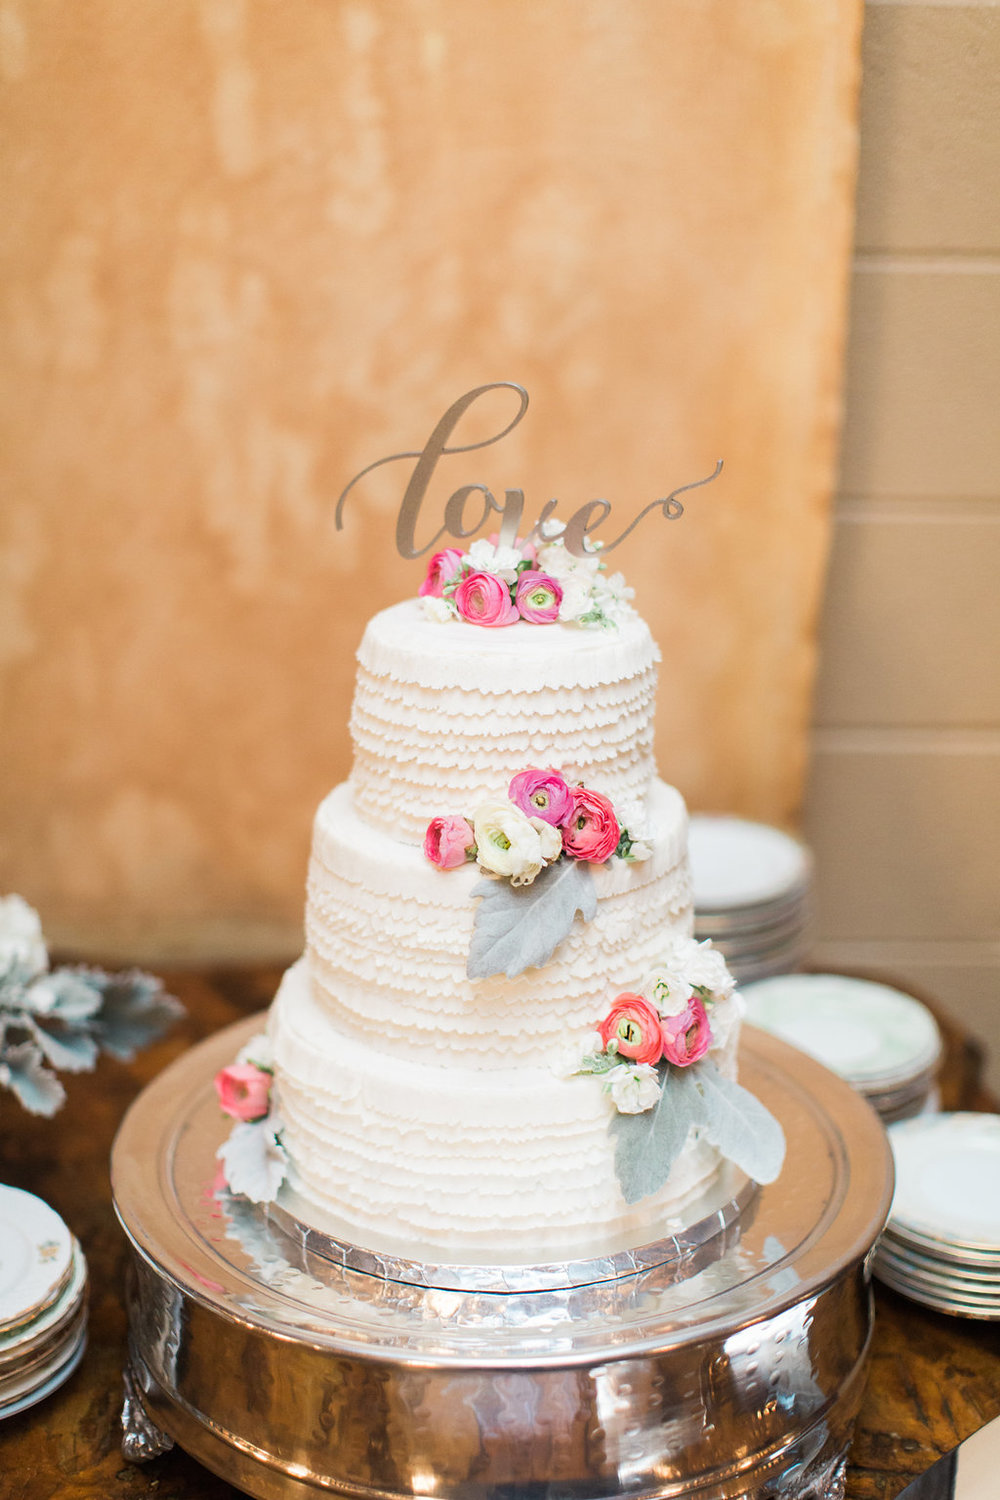 savannah-wedding-planner-savannah-event-designer-savannah-florist-ivory-and-beau-savannah-weddings-savannah-station-wedding-cake-dessert-table.jpg